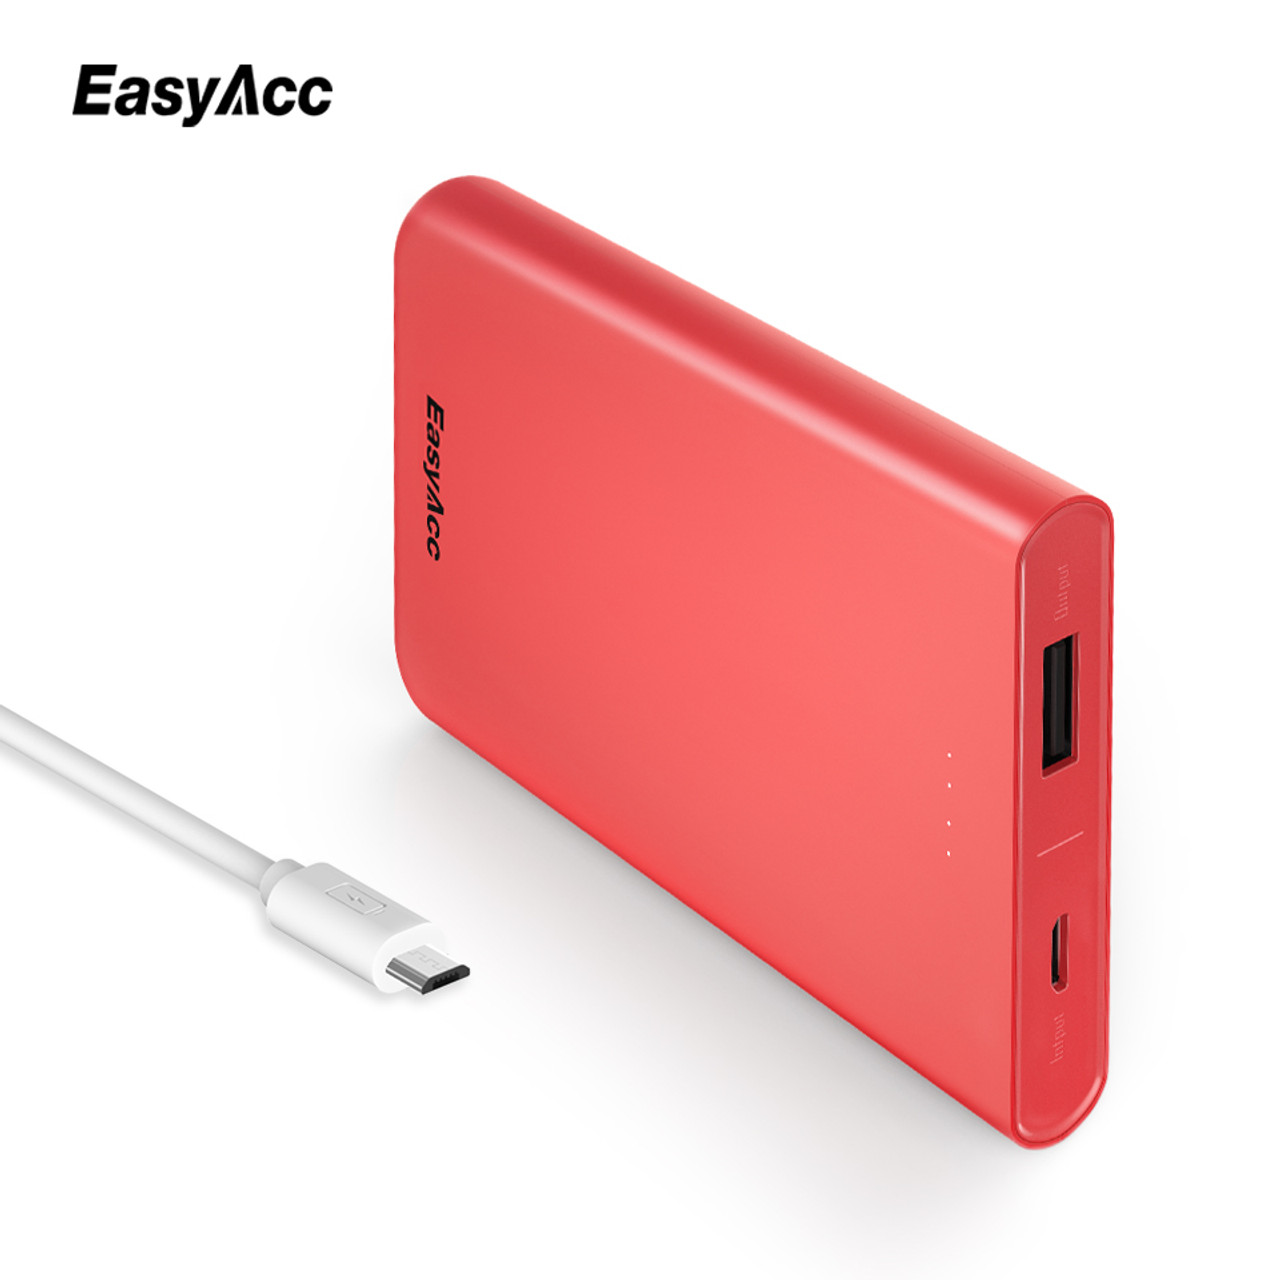 Easyacc 10000mah Power Bank For Xiaomi Mi 5v 2a Usb Port Slim 2 Original Fast Charge Portable Universal External